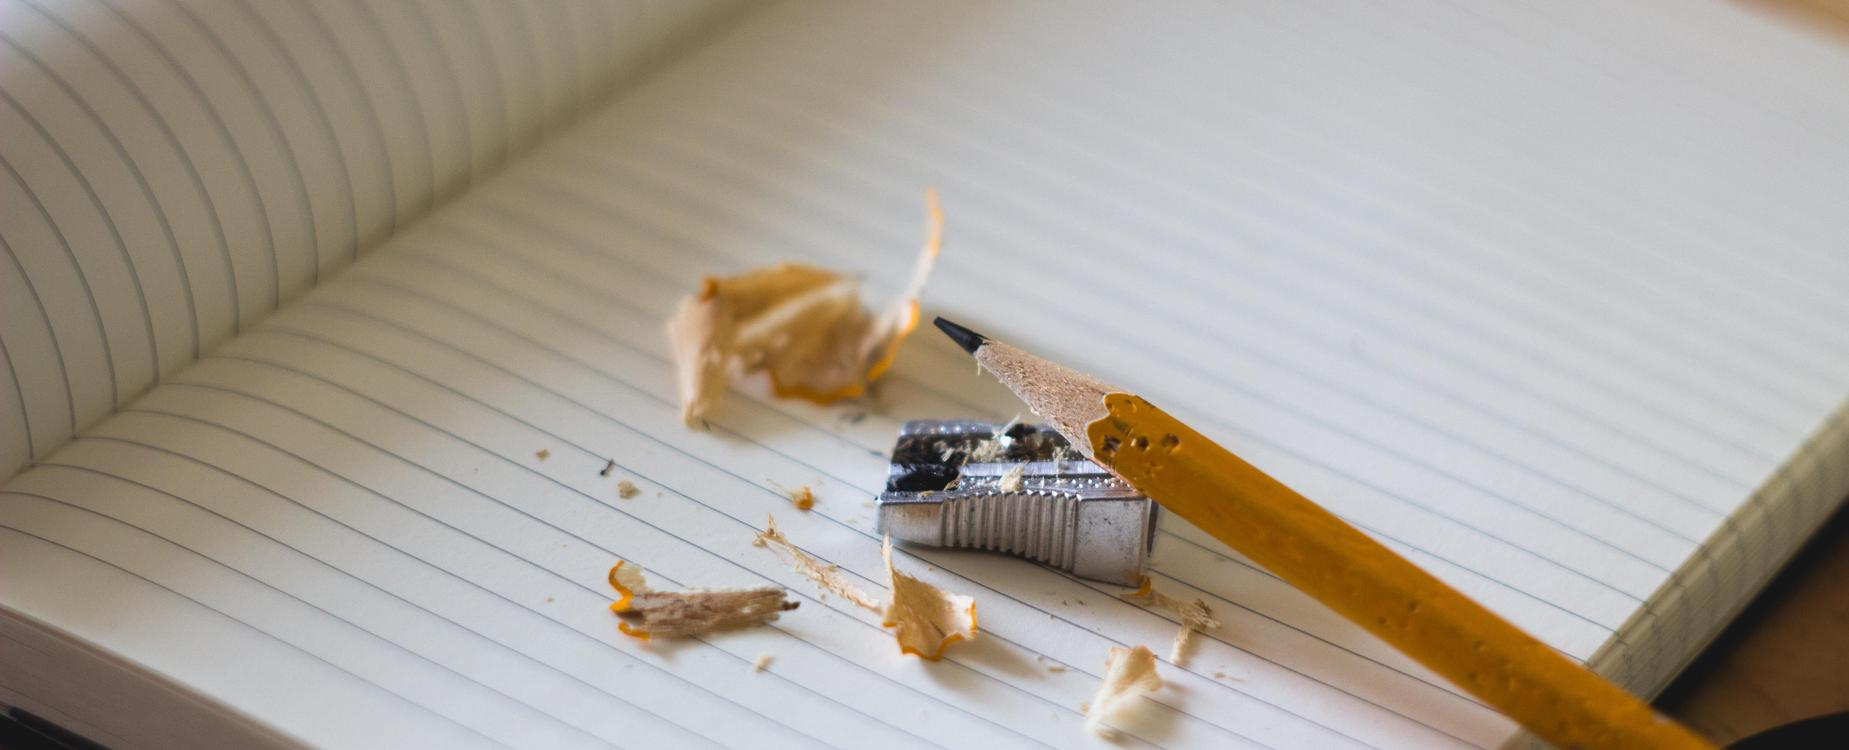 Pencil getting sharpened